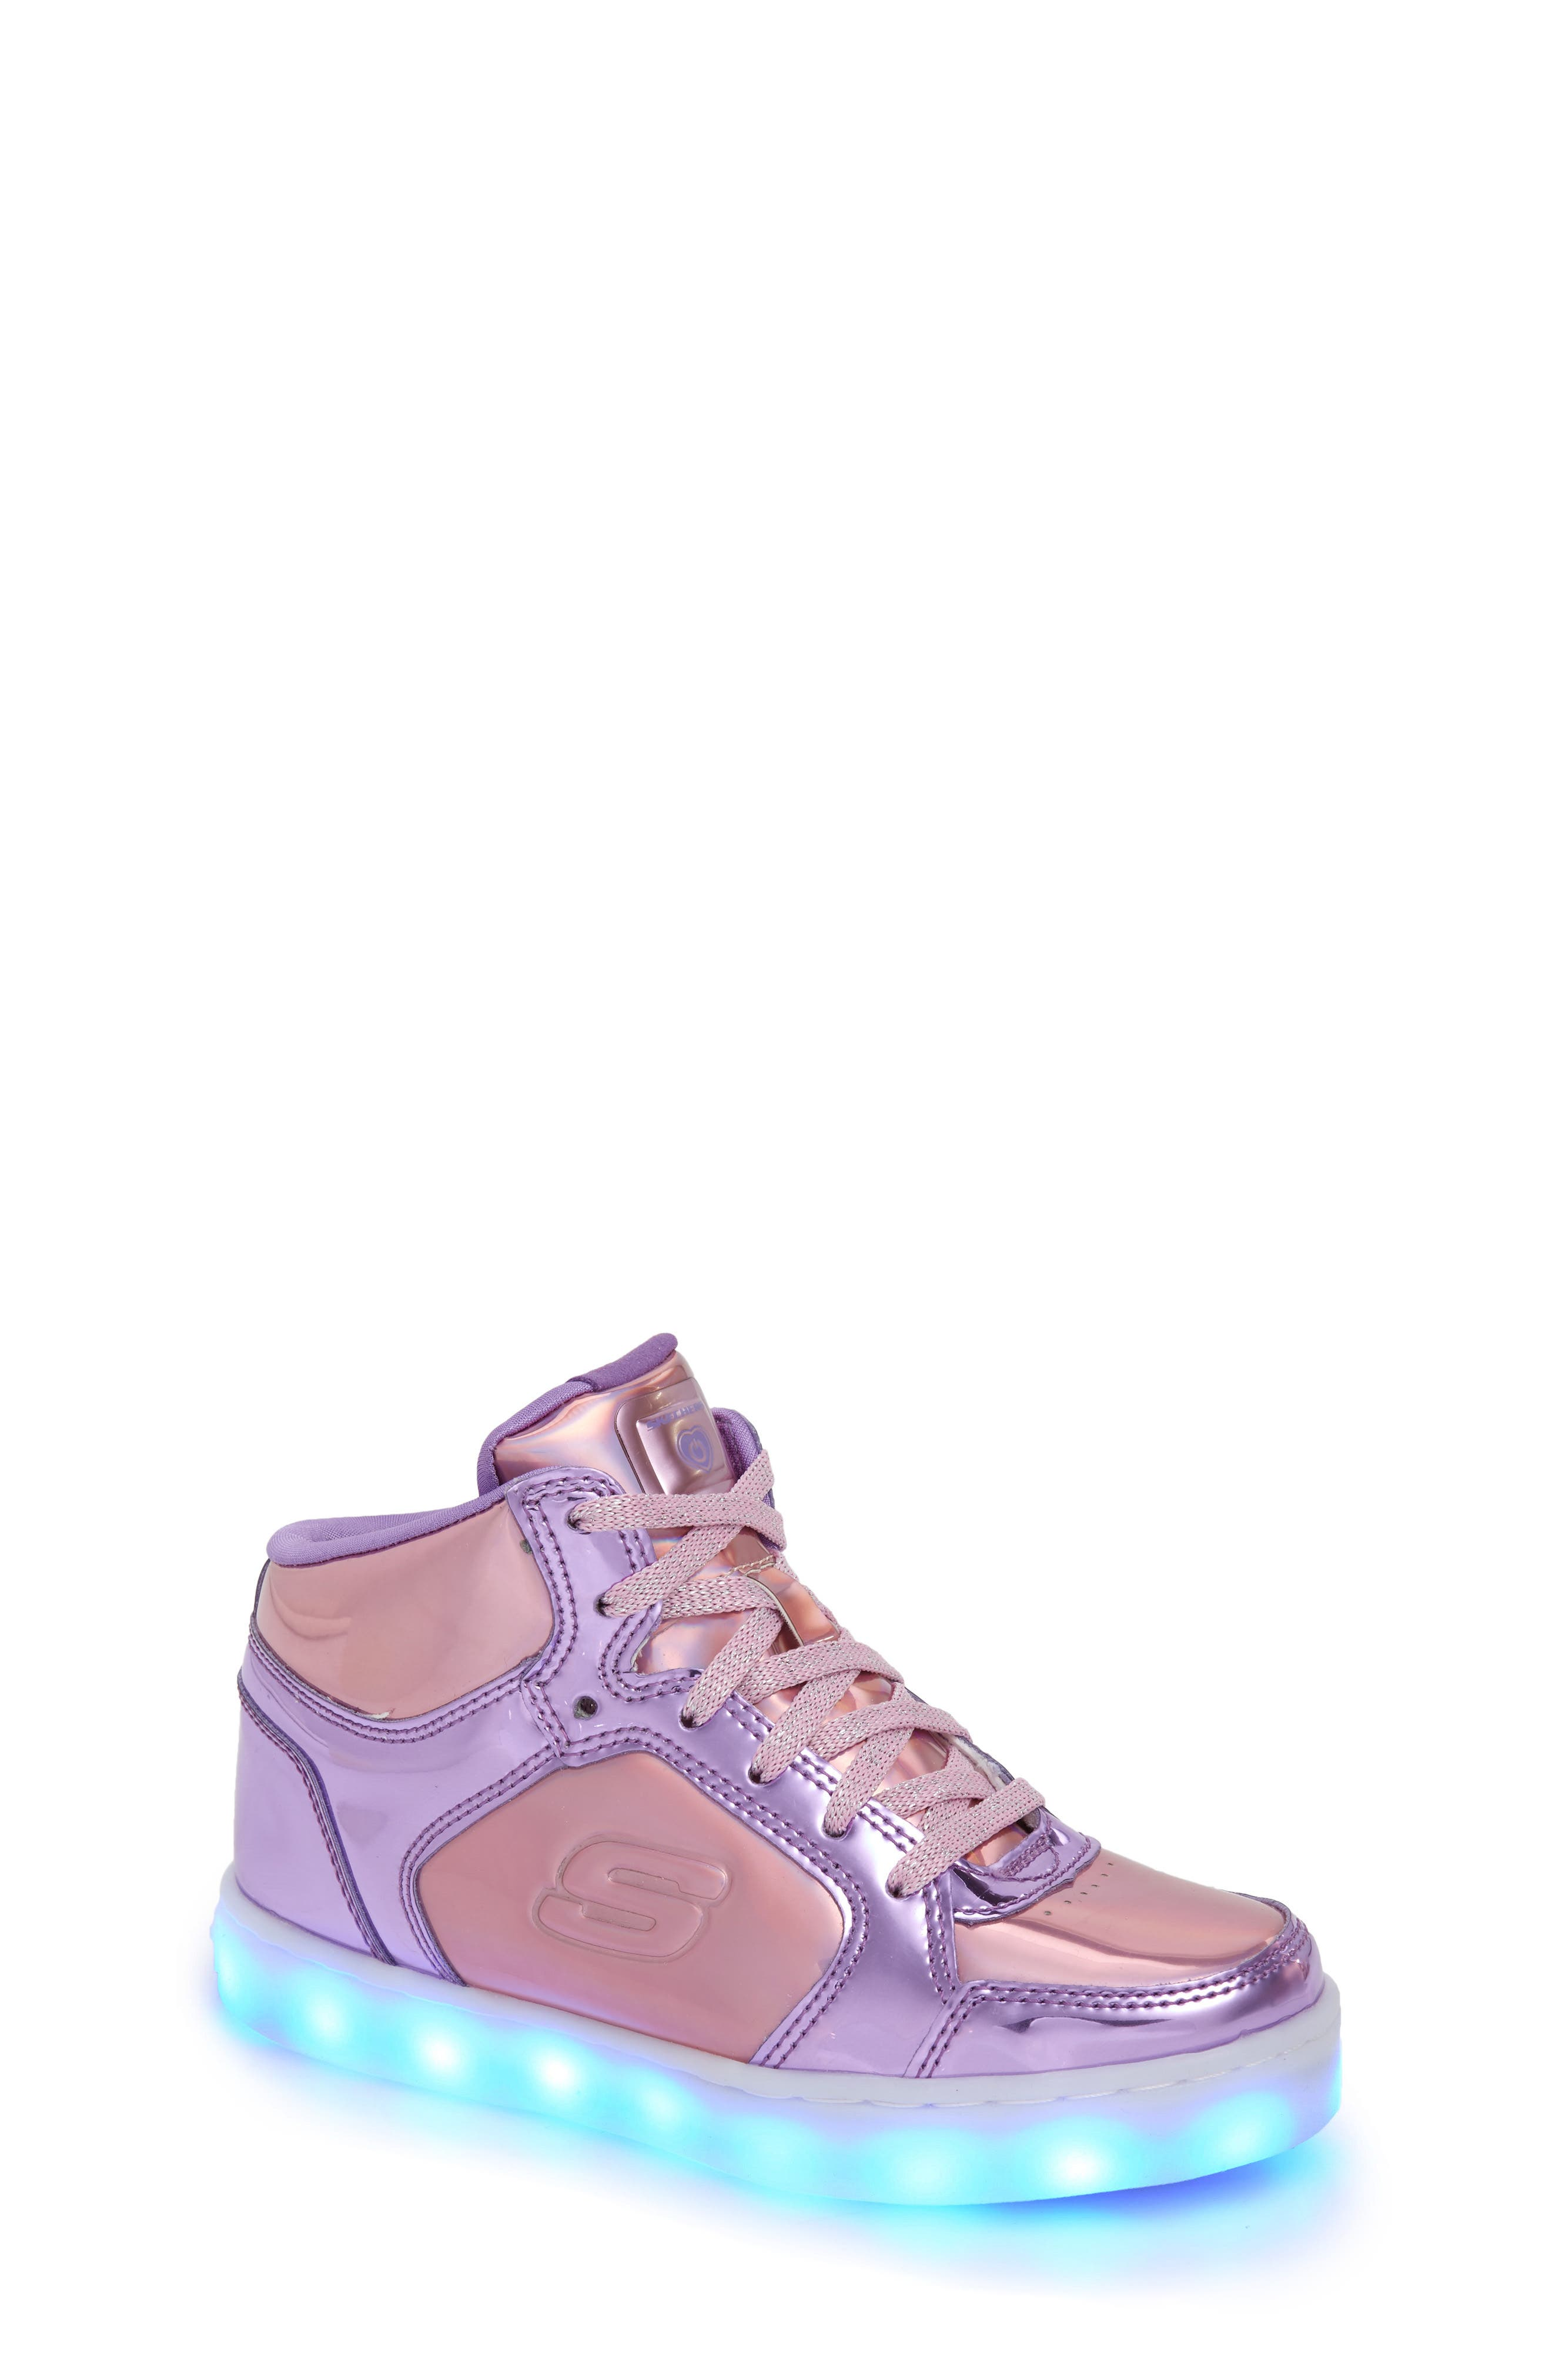 SKECHERS,                             Energy Lights Metallic High Top Sneaker,                             Alternate thumbnail 7, color,                             650